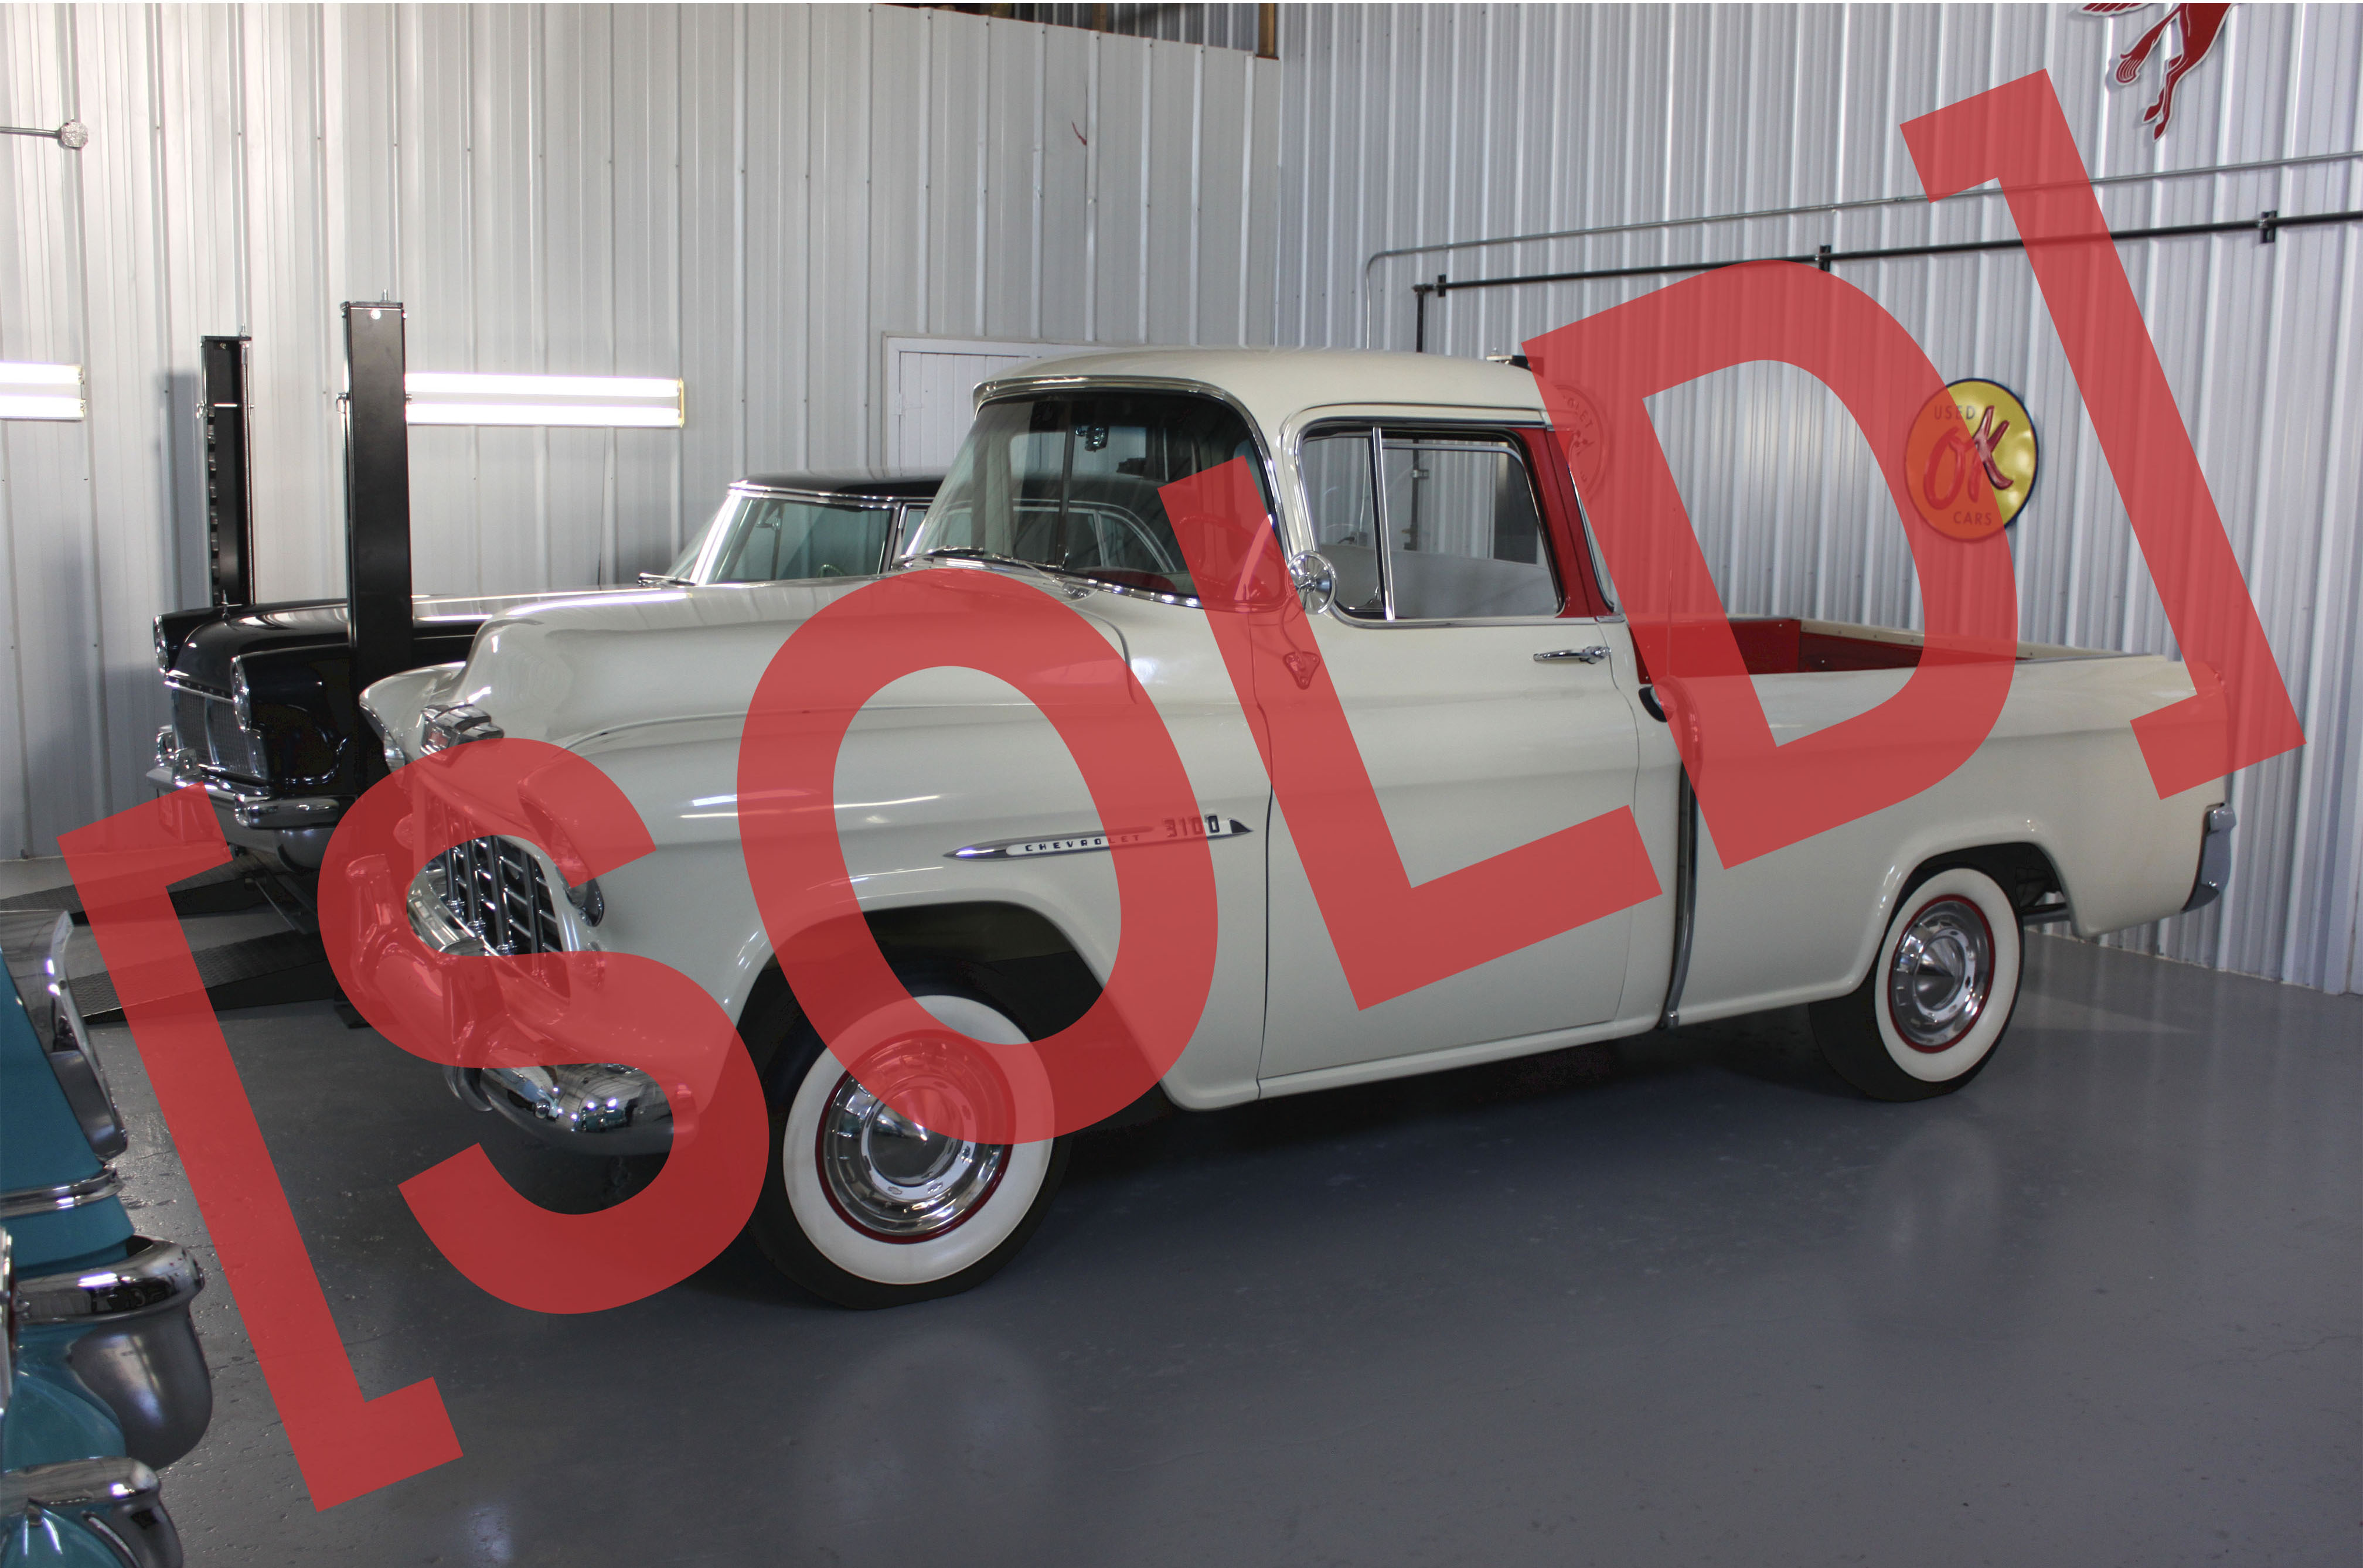 1955 Chevrolet Cameo 3100 Series Pic